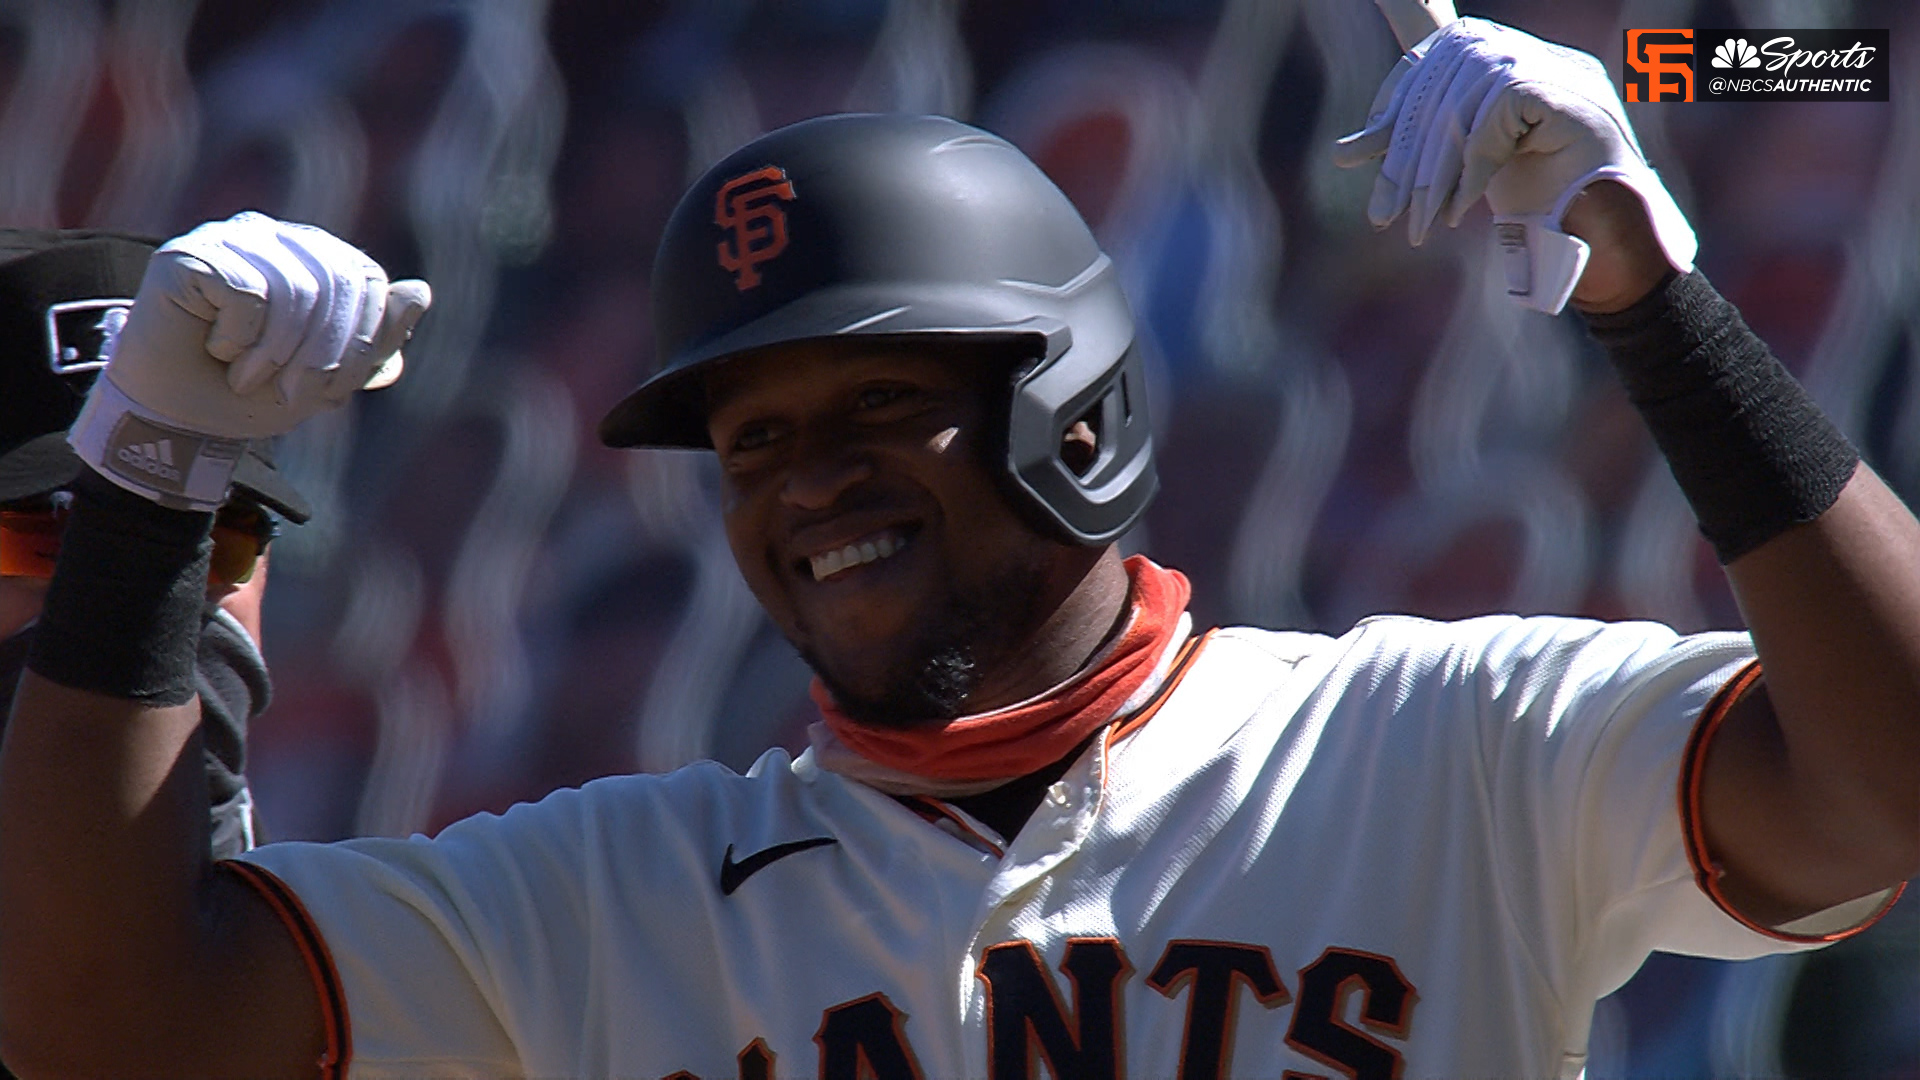 Giants' Basabe will give ball from first hit to his mother